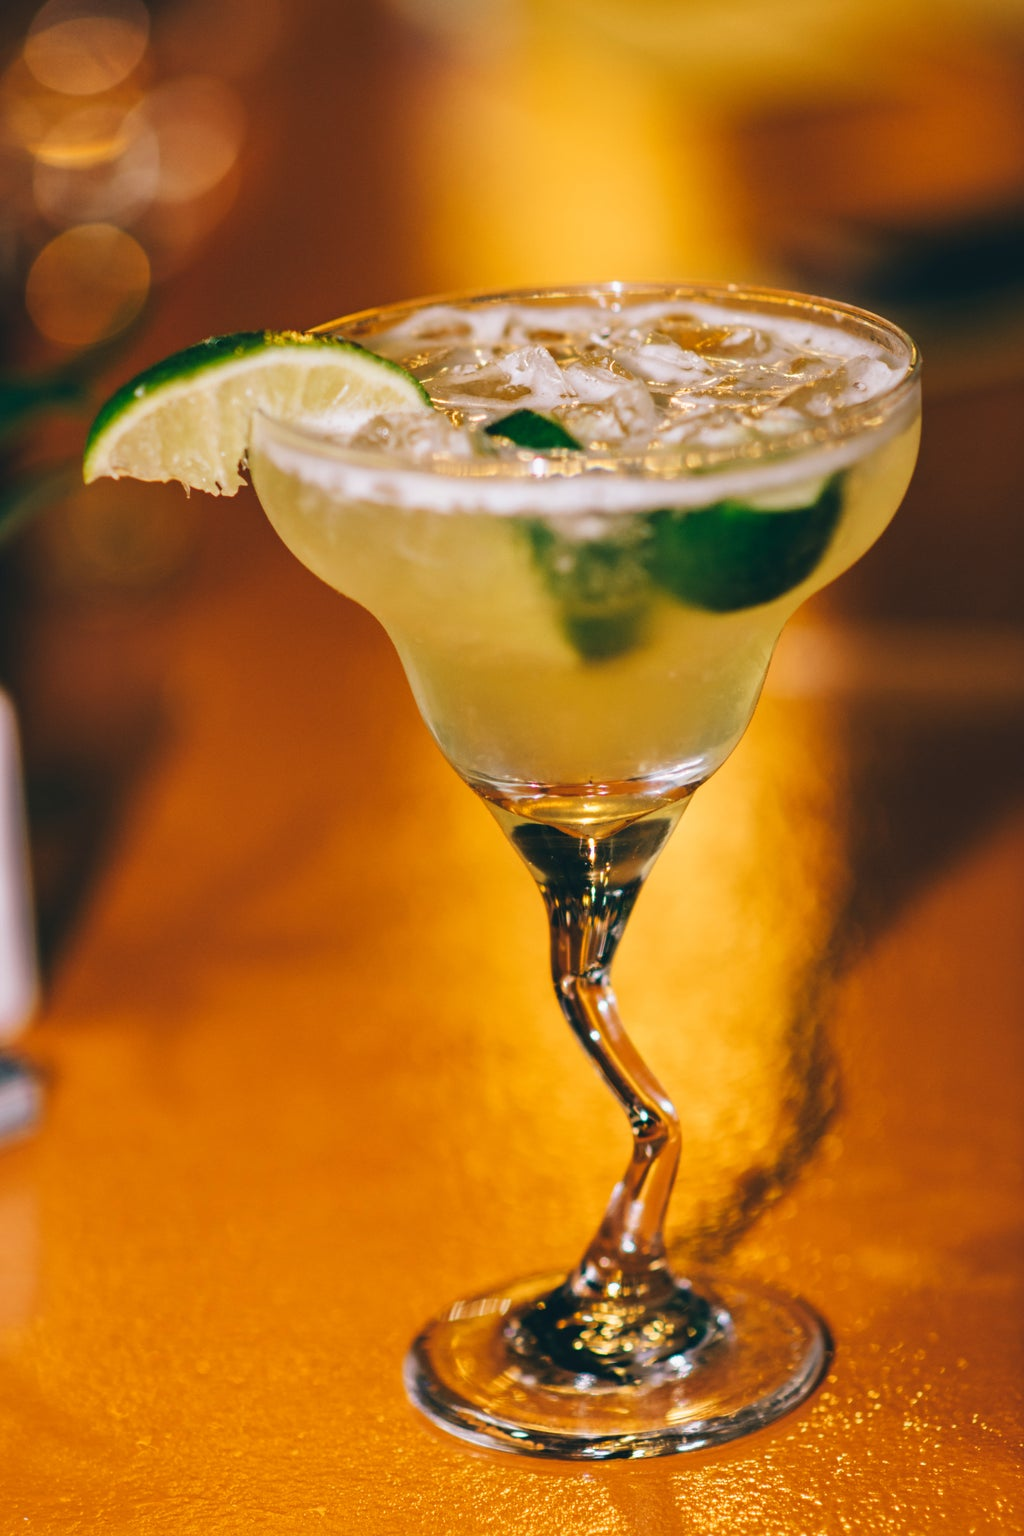 A glass of margarita cocktail